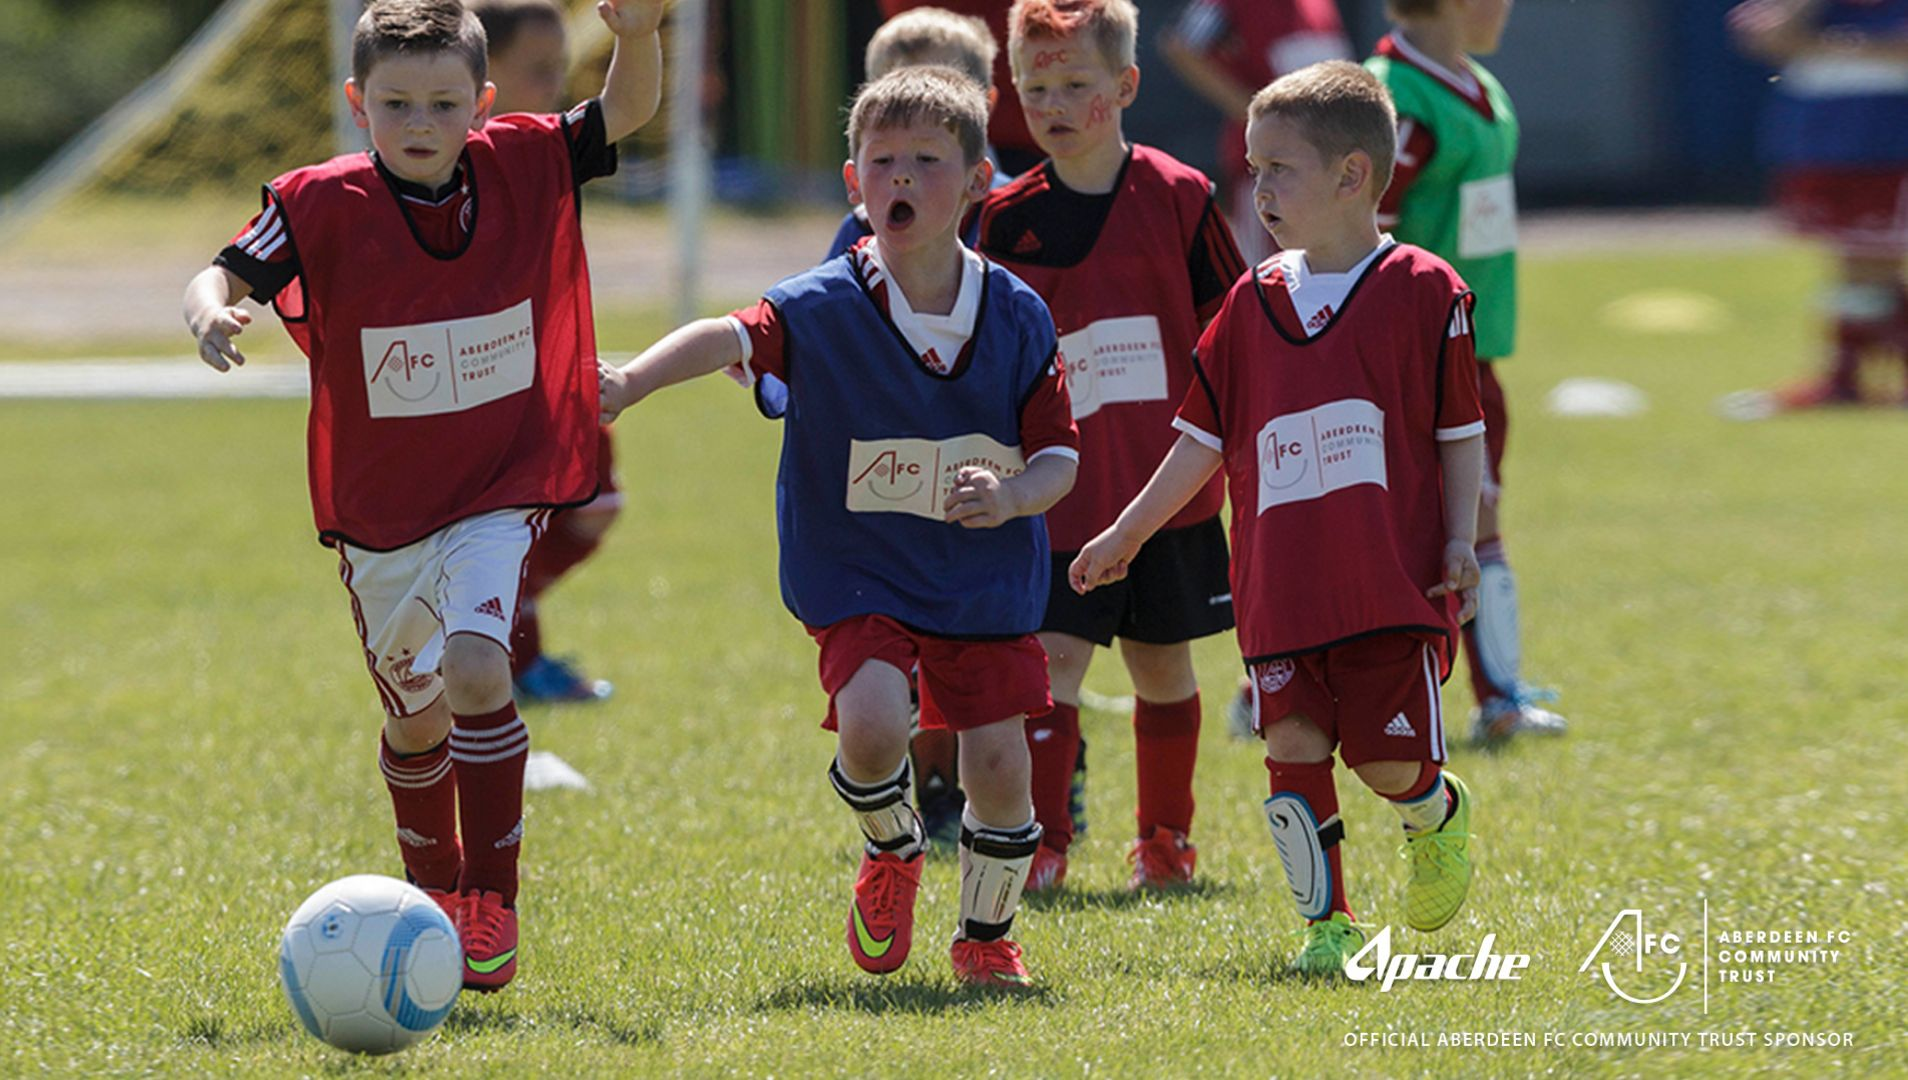 May Kicks for Kids Coaching | On Sale Friday 20th April!